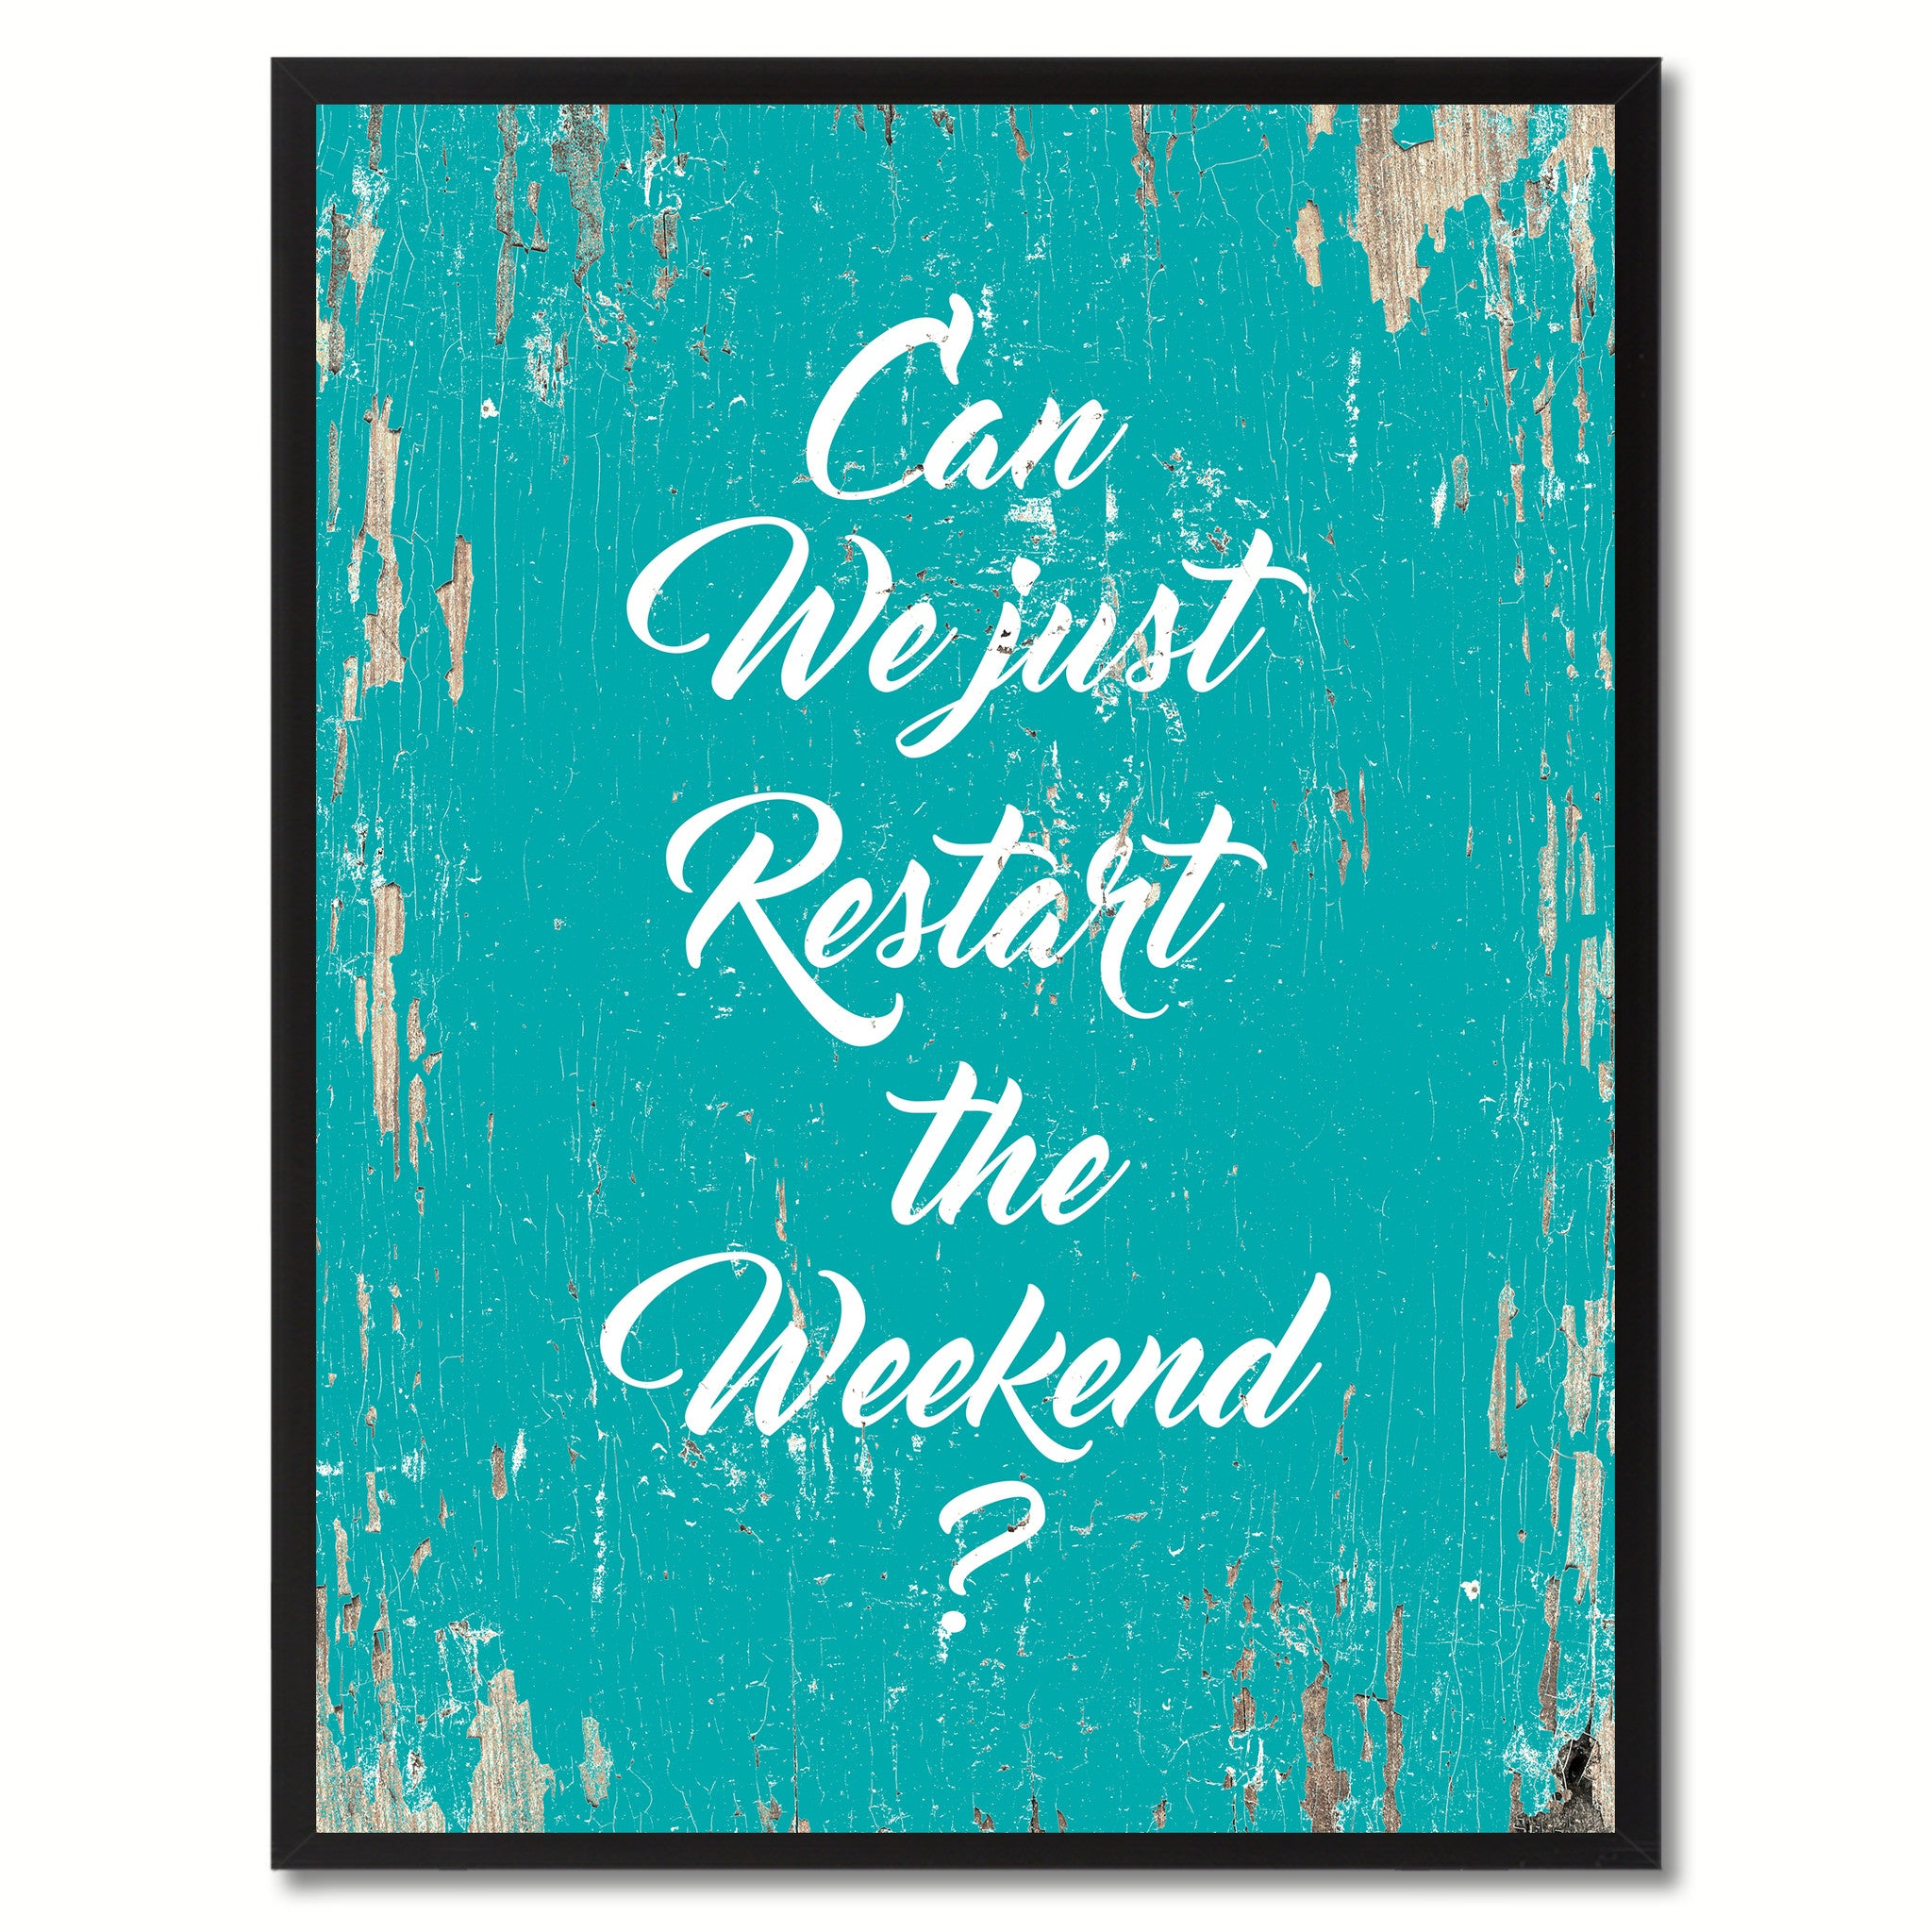 Can We Just Restart The Weekend Saying Black Framed Canvas Print Home Decor Wall Art Gifts 120028 Aqua